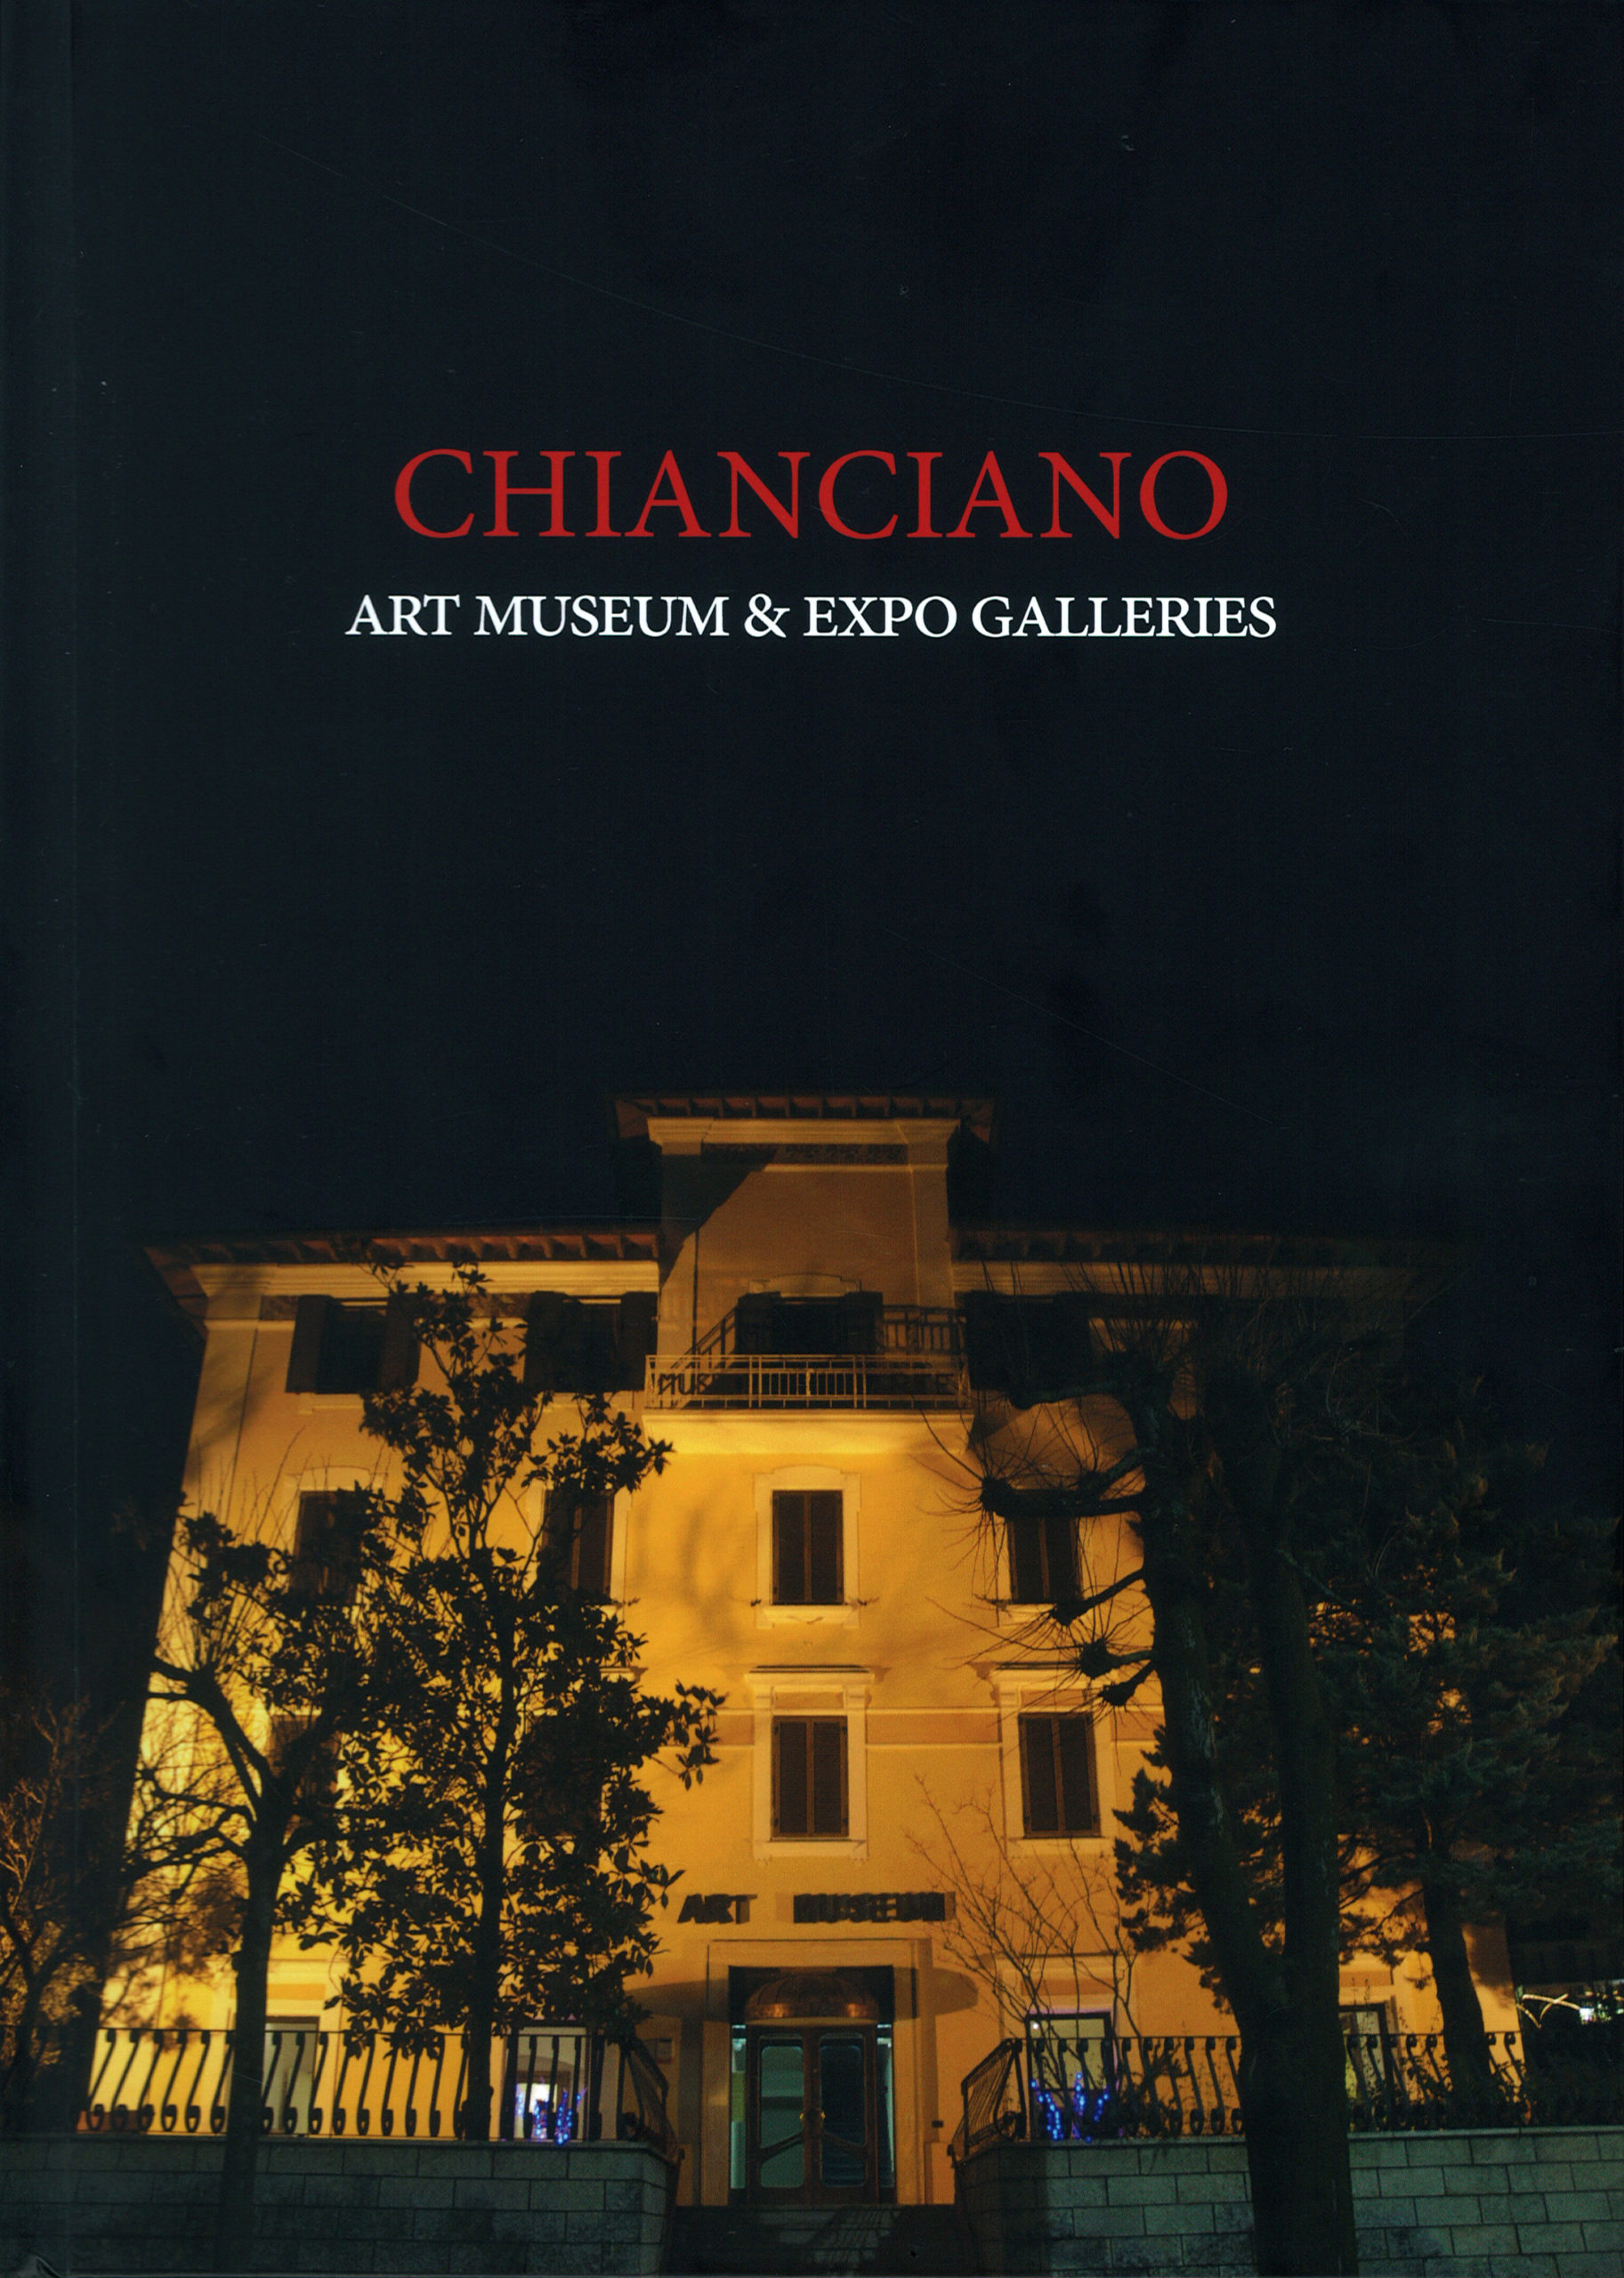 Katalog - Chianciano, Art Museum & Expo Galleries 2018